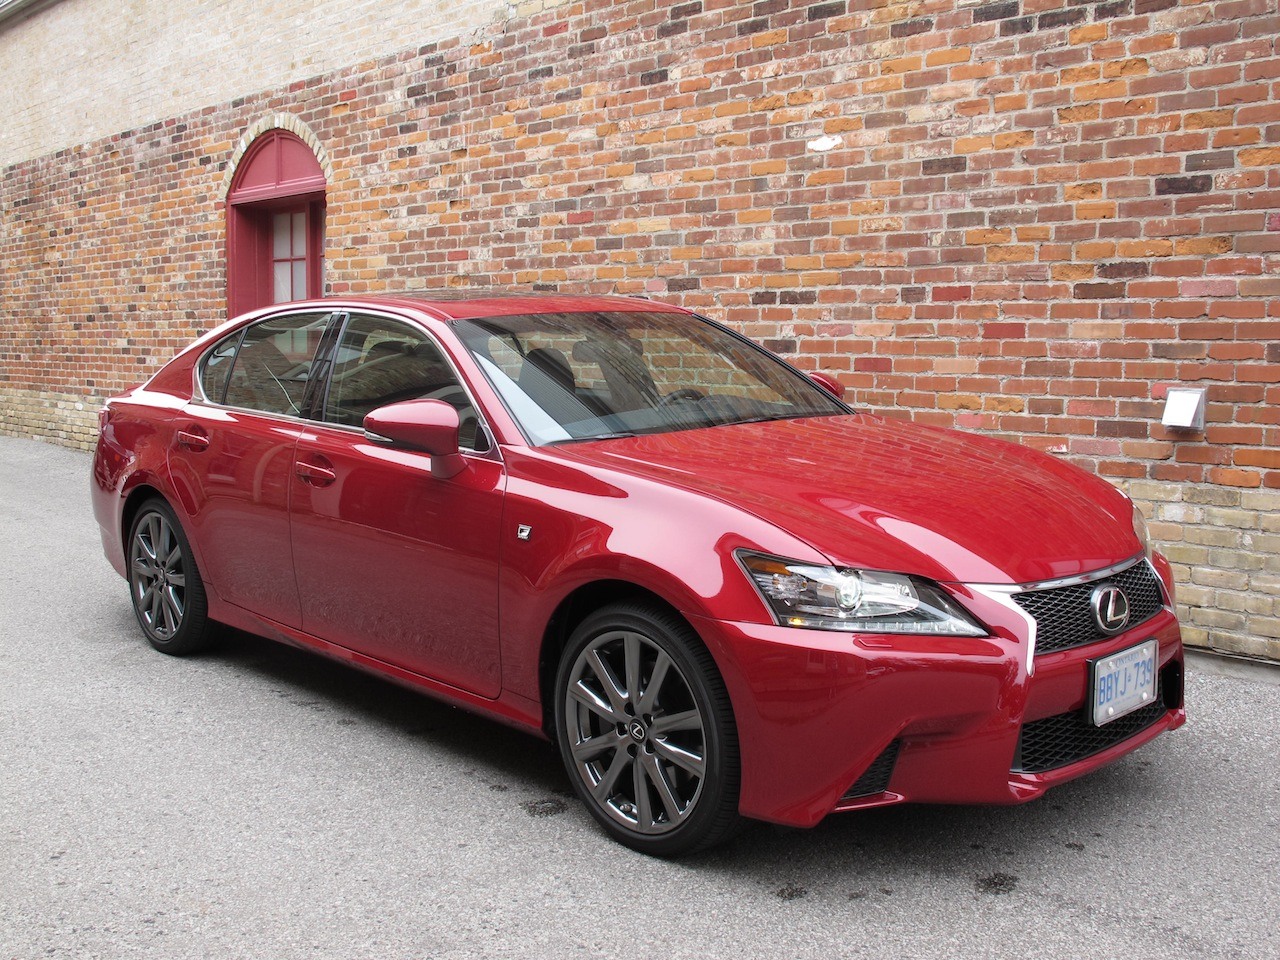 2013 Lexus GS350 F Sport AWD Red Front Side View